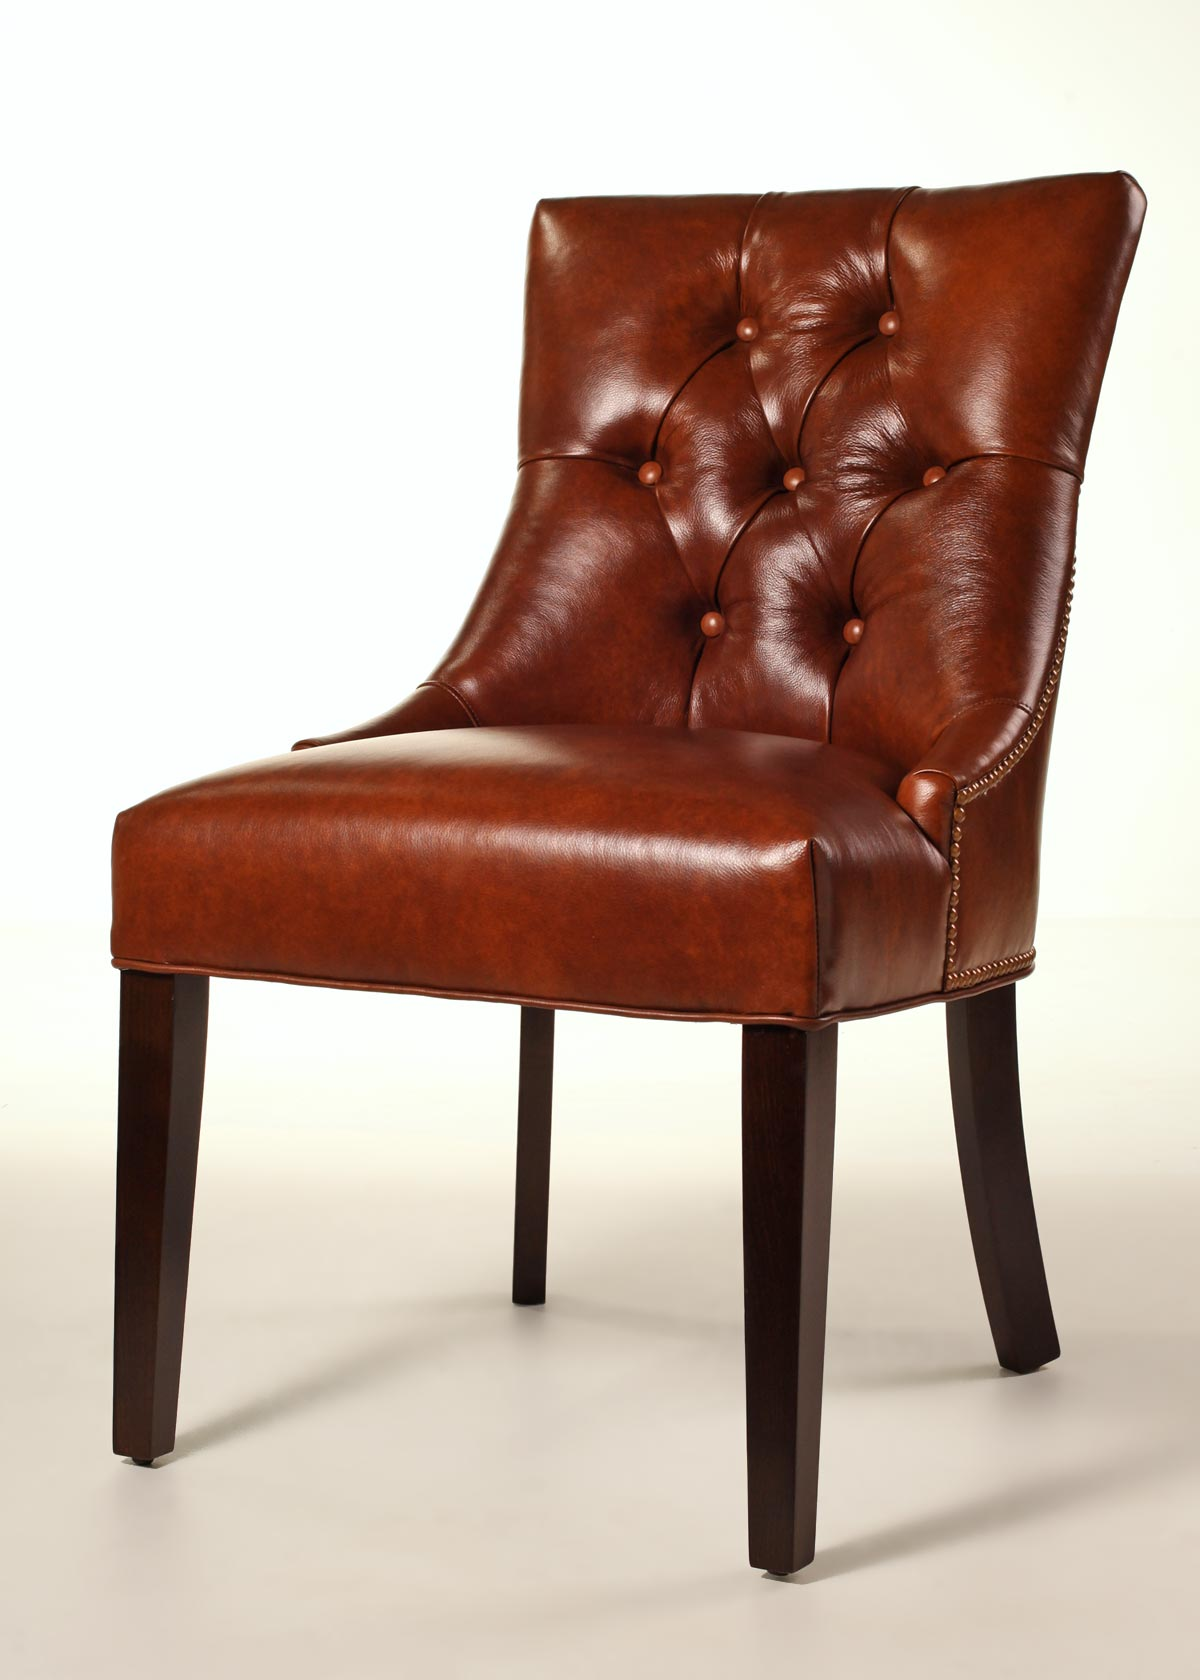 Discount Leather Chairs Leather Dining Chairs Carrington Court Custom Chairs Buy Direct